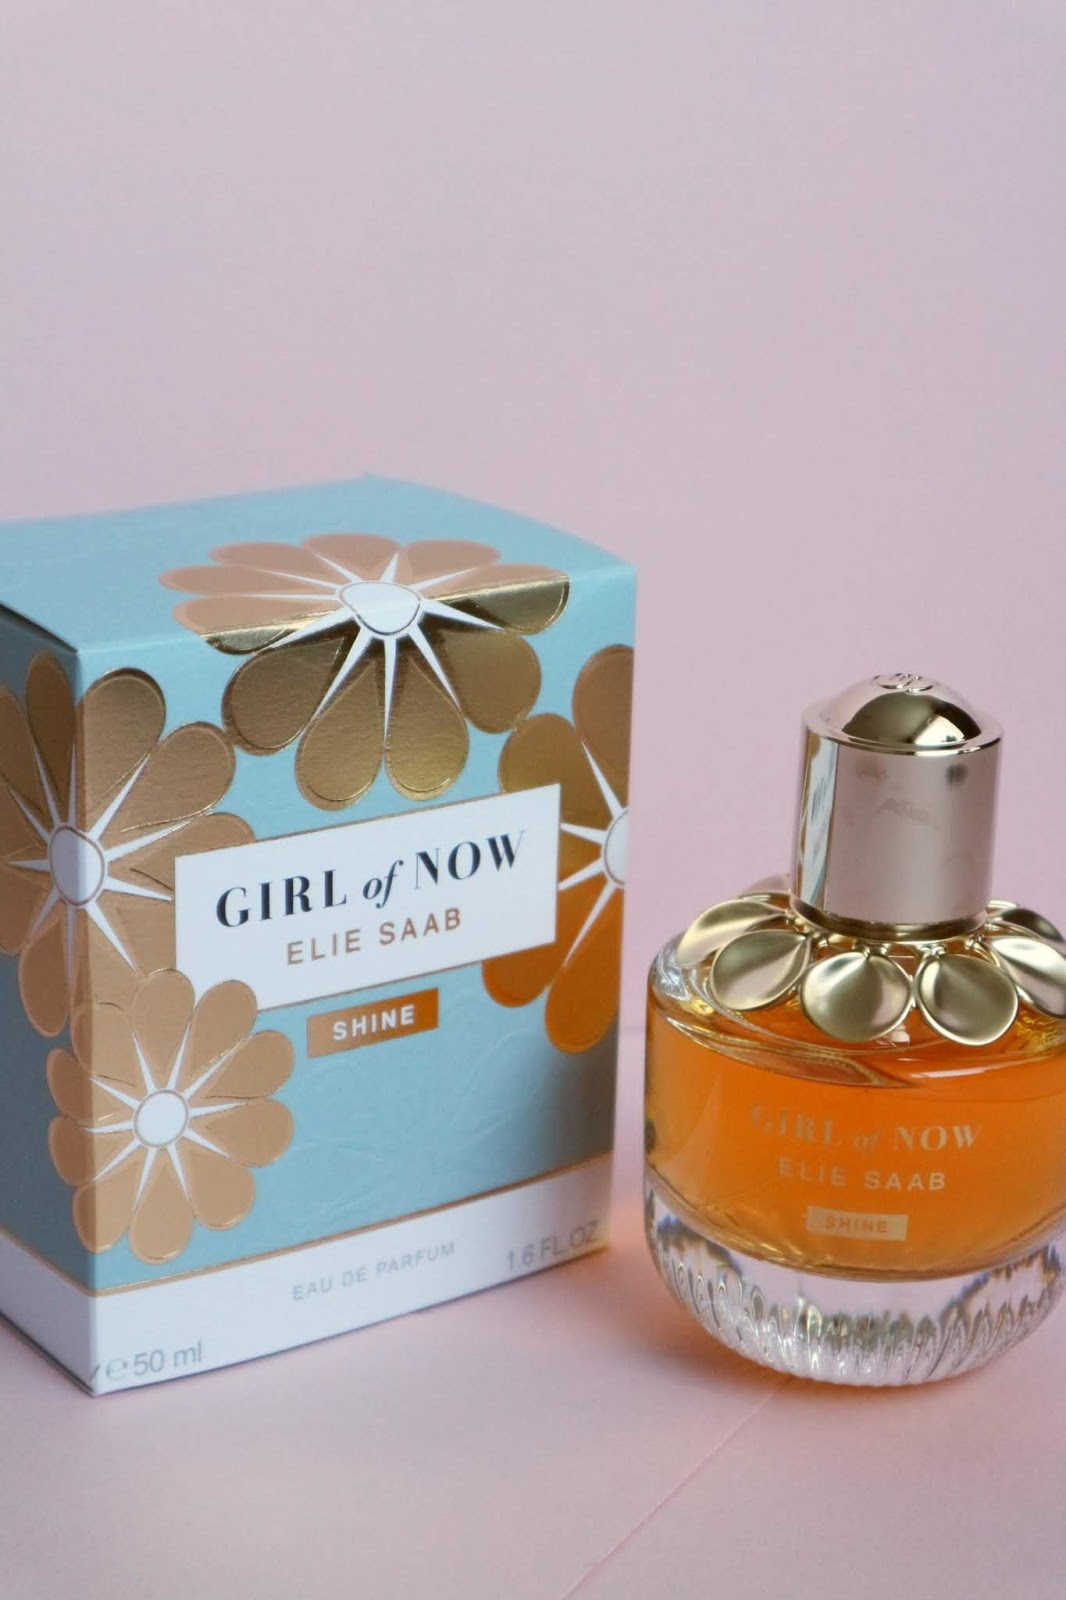 elie saab girl of now shine review